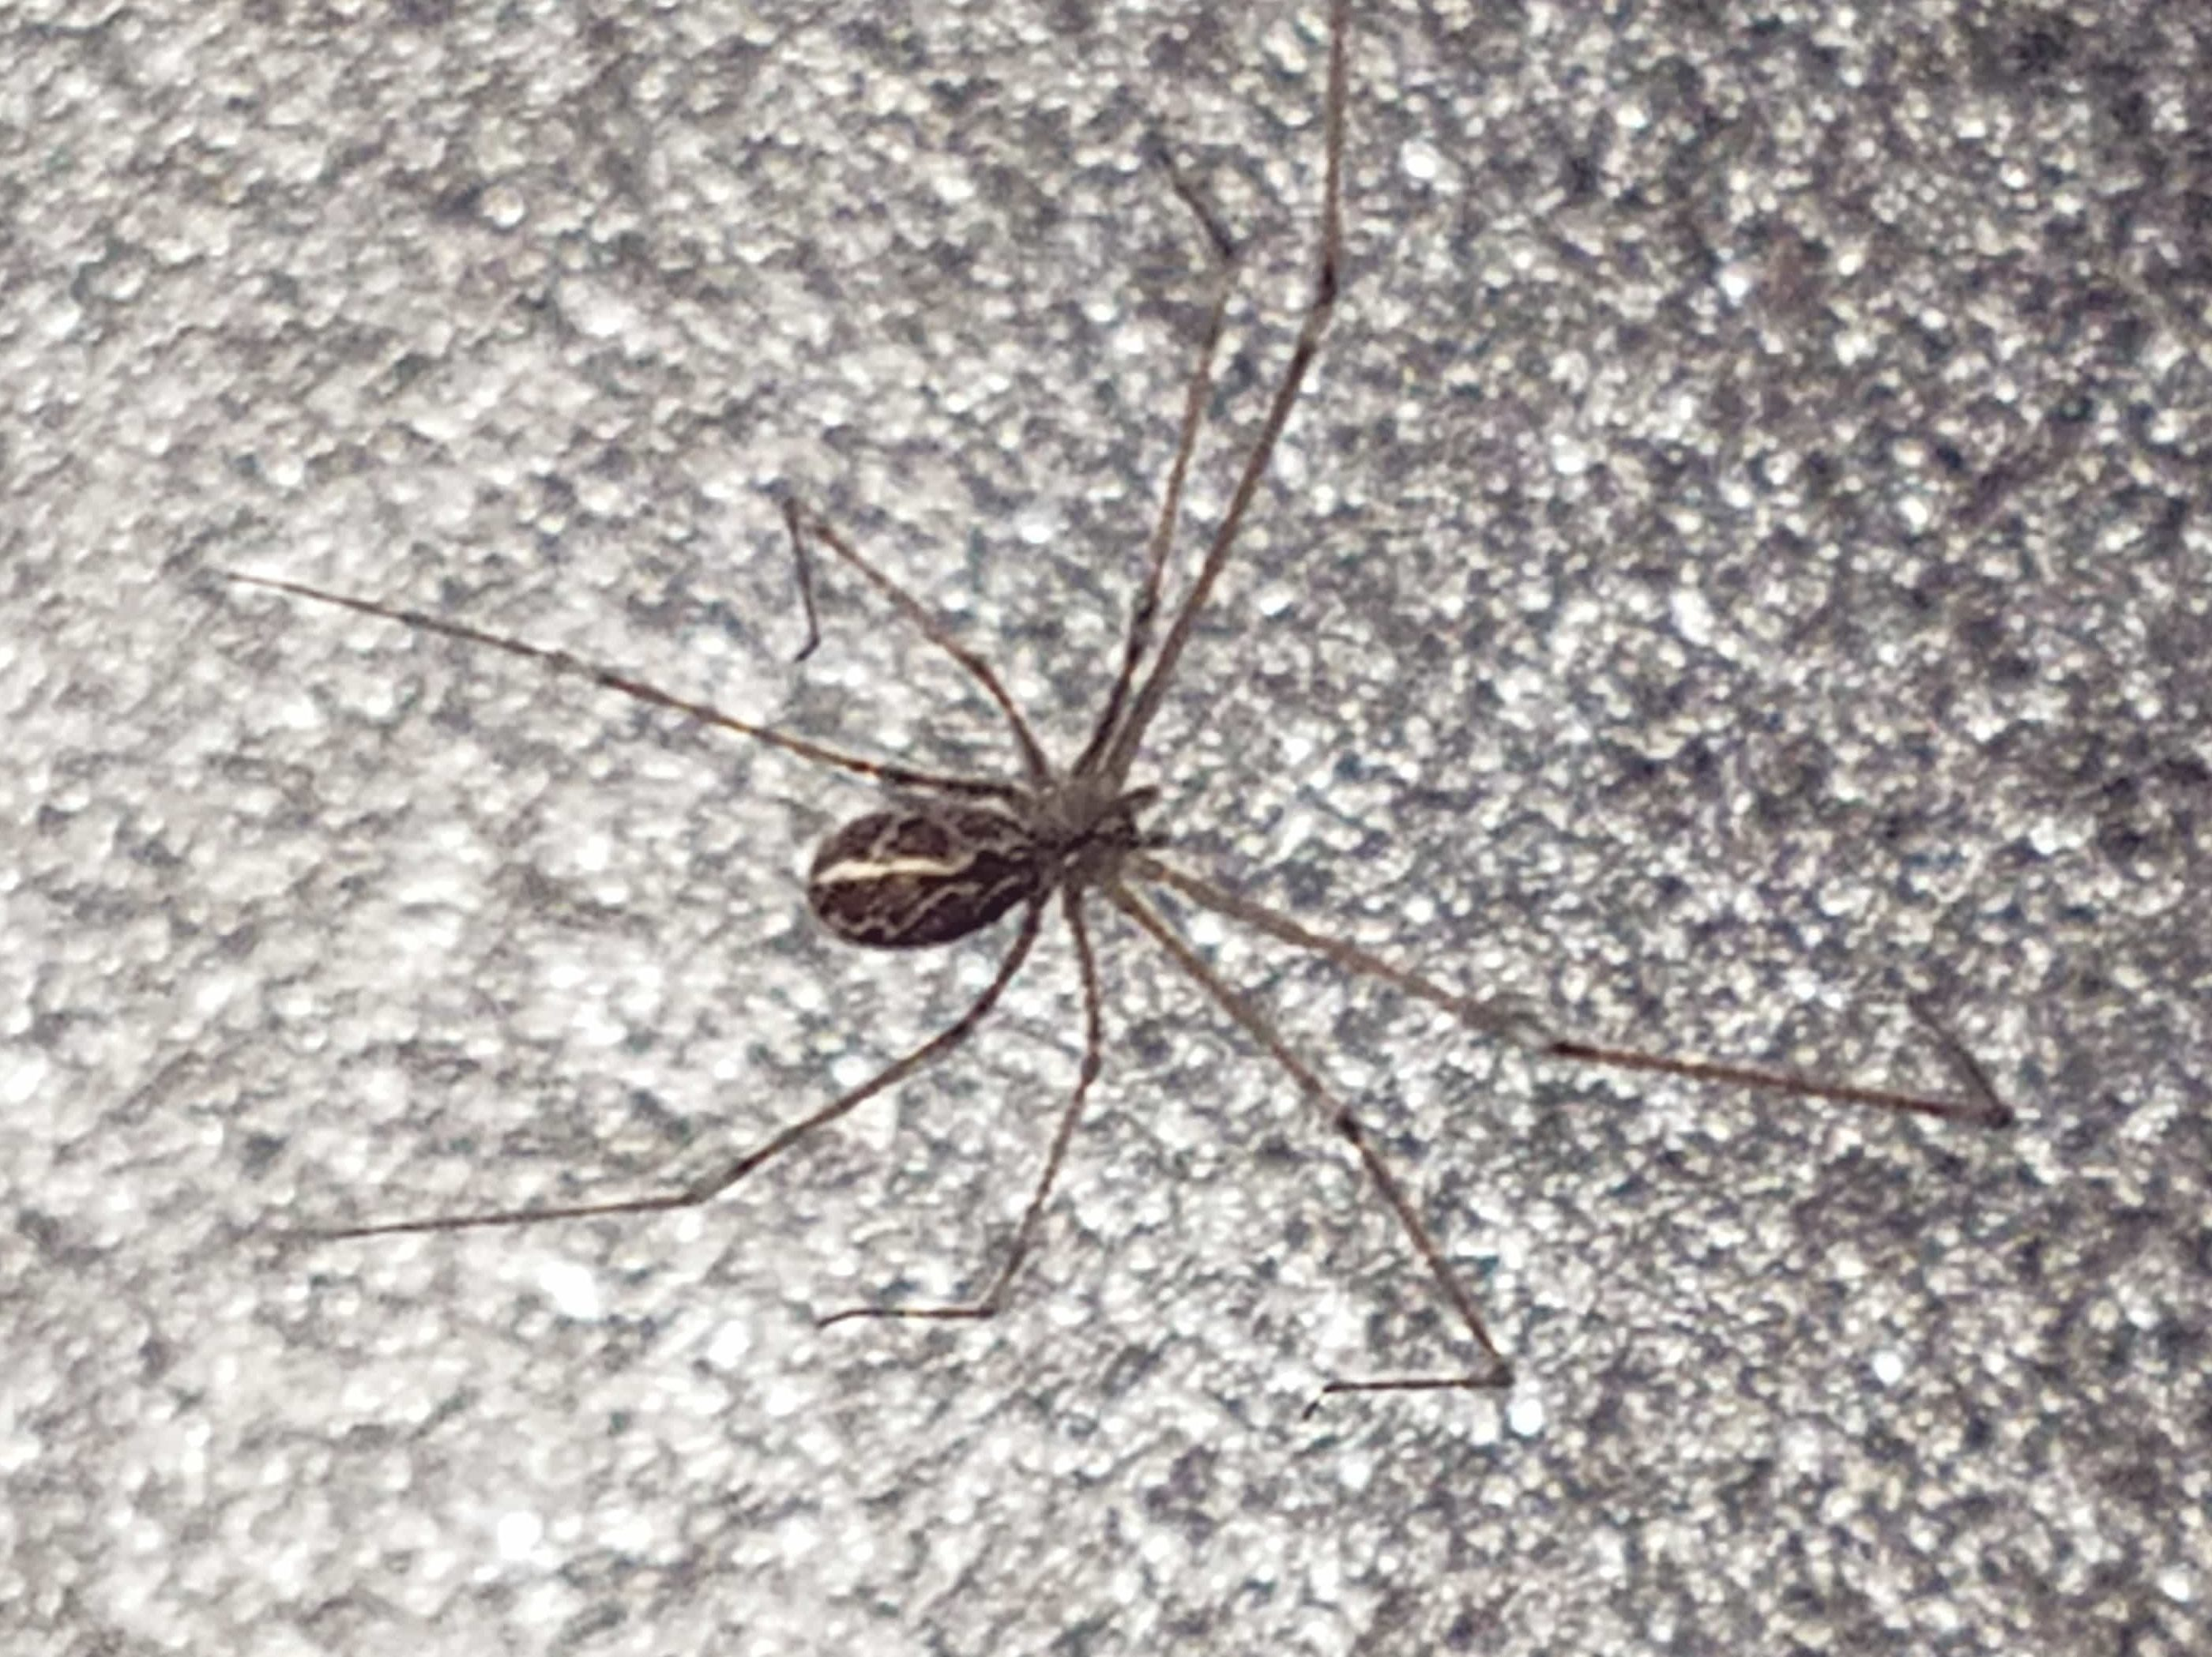 Picture of Holocnemus pluchei (Marbled Cellar Spider) - Dorsal